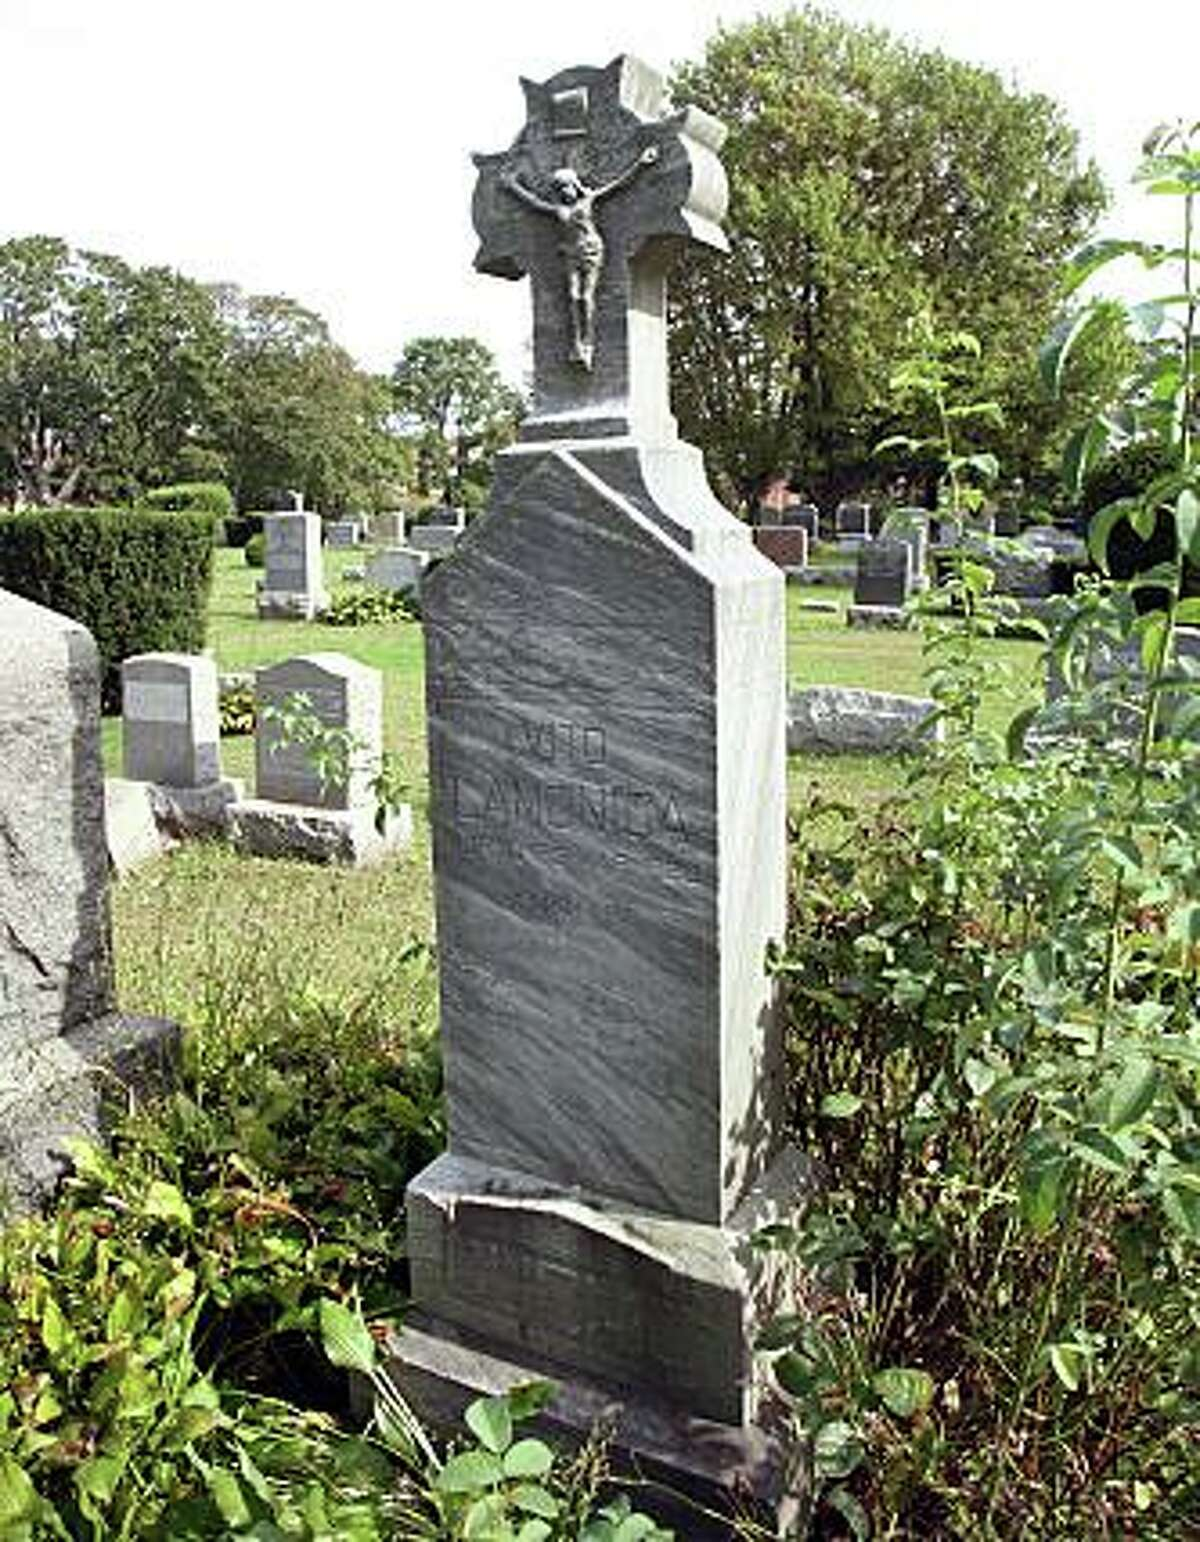 The gravesite of Vito Lamonica in Lakeview Cemetery in Bridgeport, Conn.